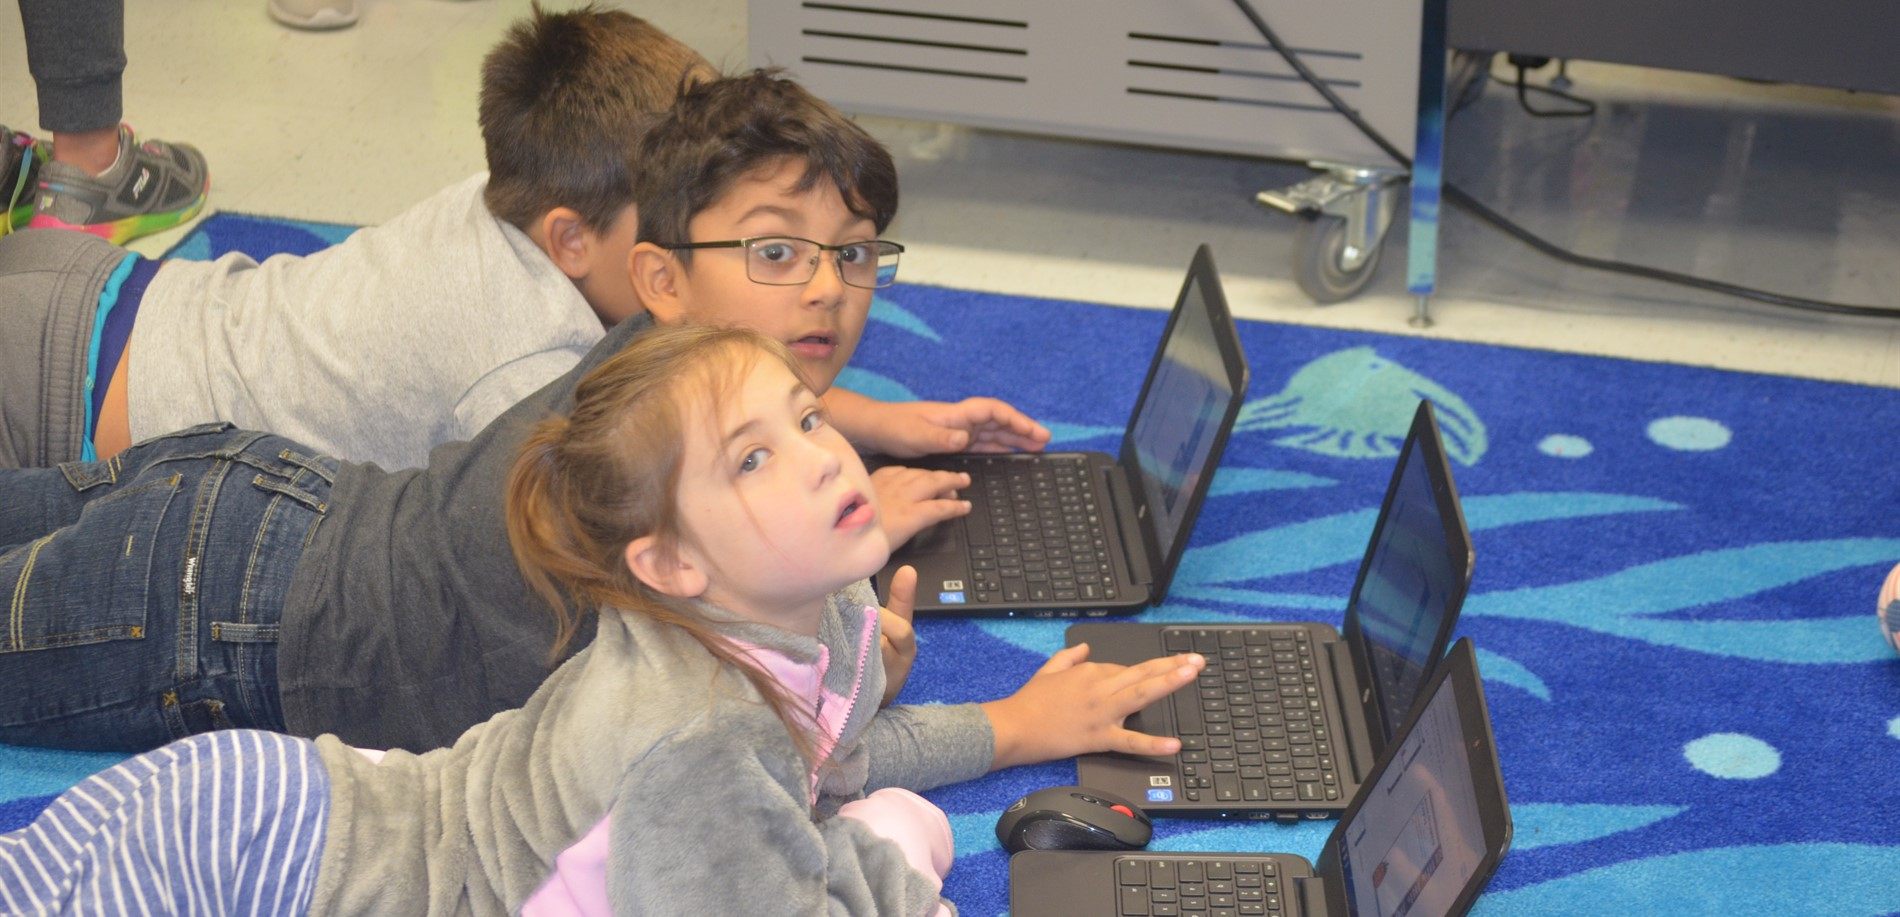 Students using Chromebooks in Class